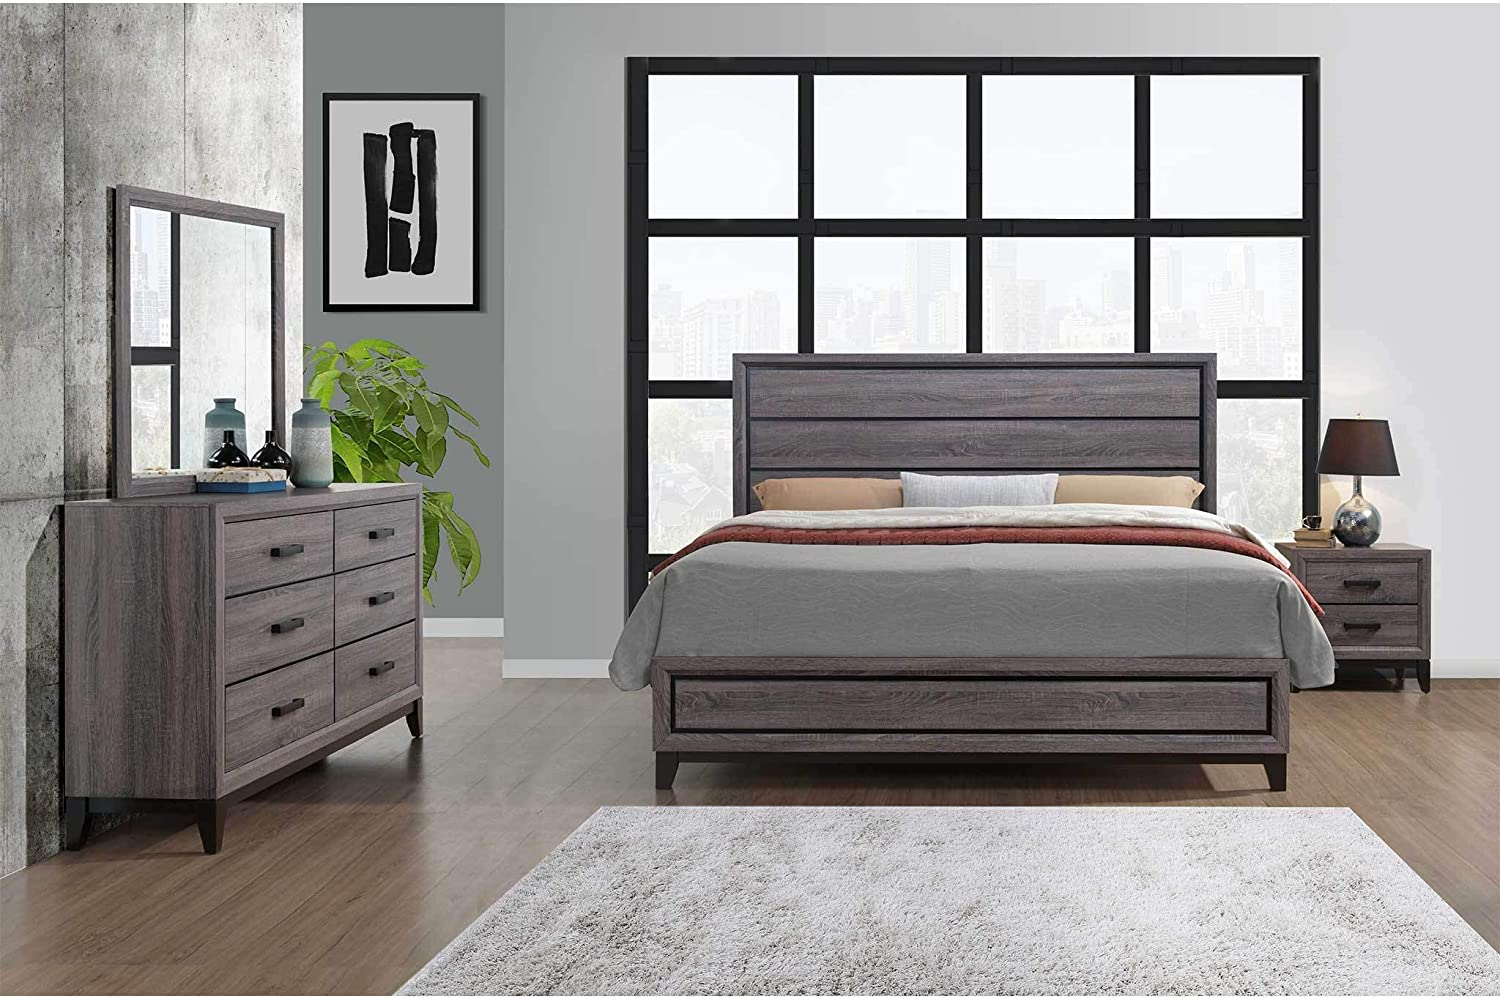 Global Furniture USA Kate Bedroom Set, Includes Inside delivery with Assembly to Room of Choice (Grey, Queen)